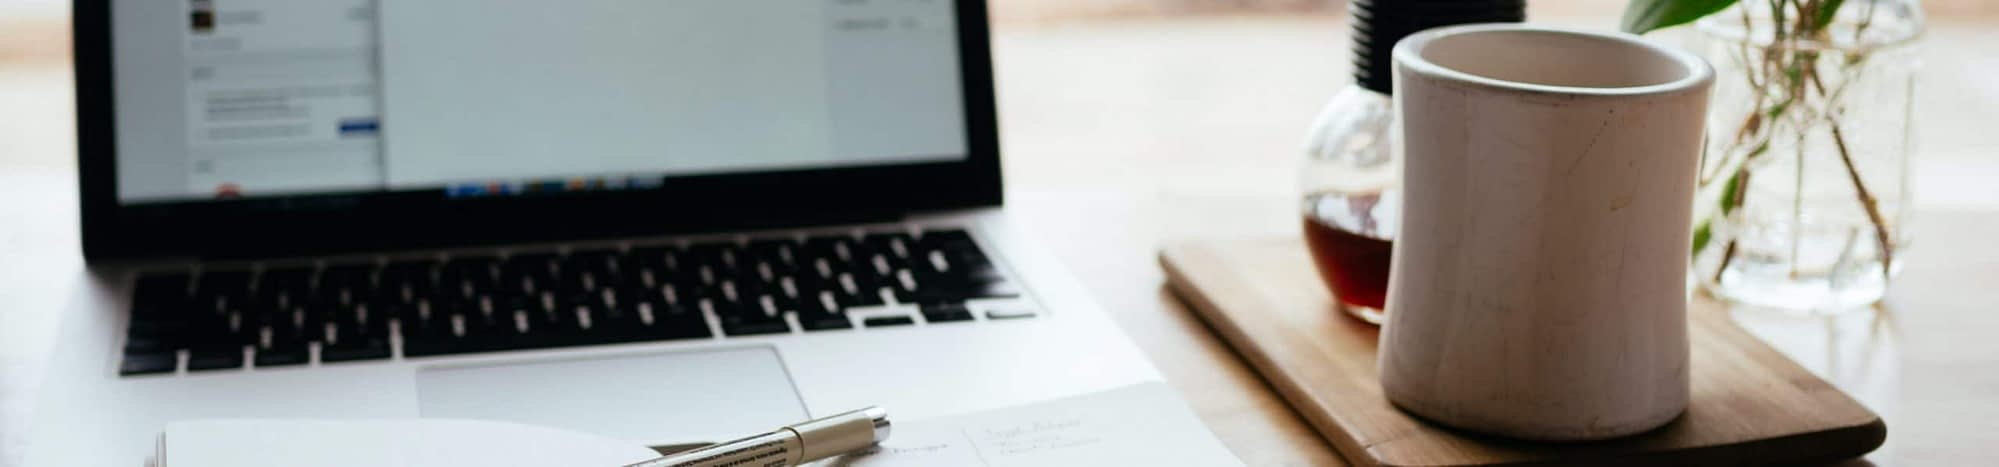 Online Courses to Get Your Startup up and Running